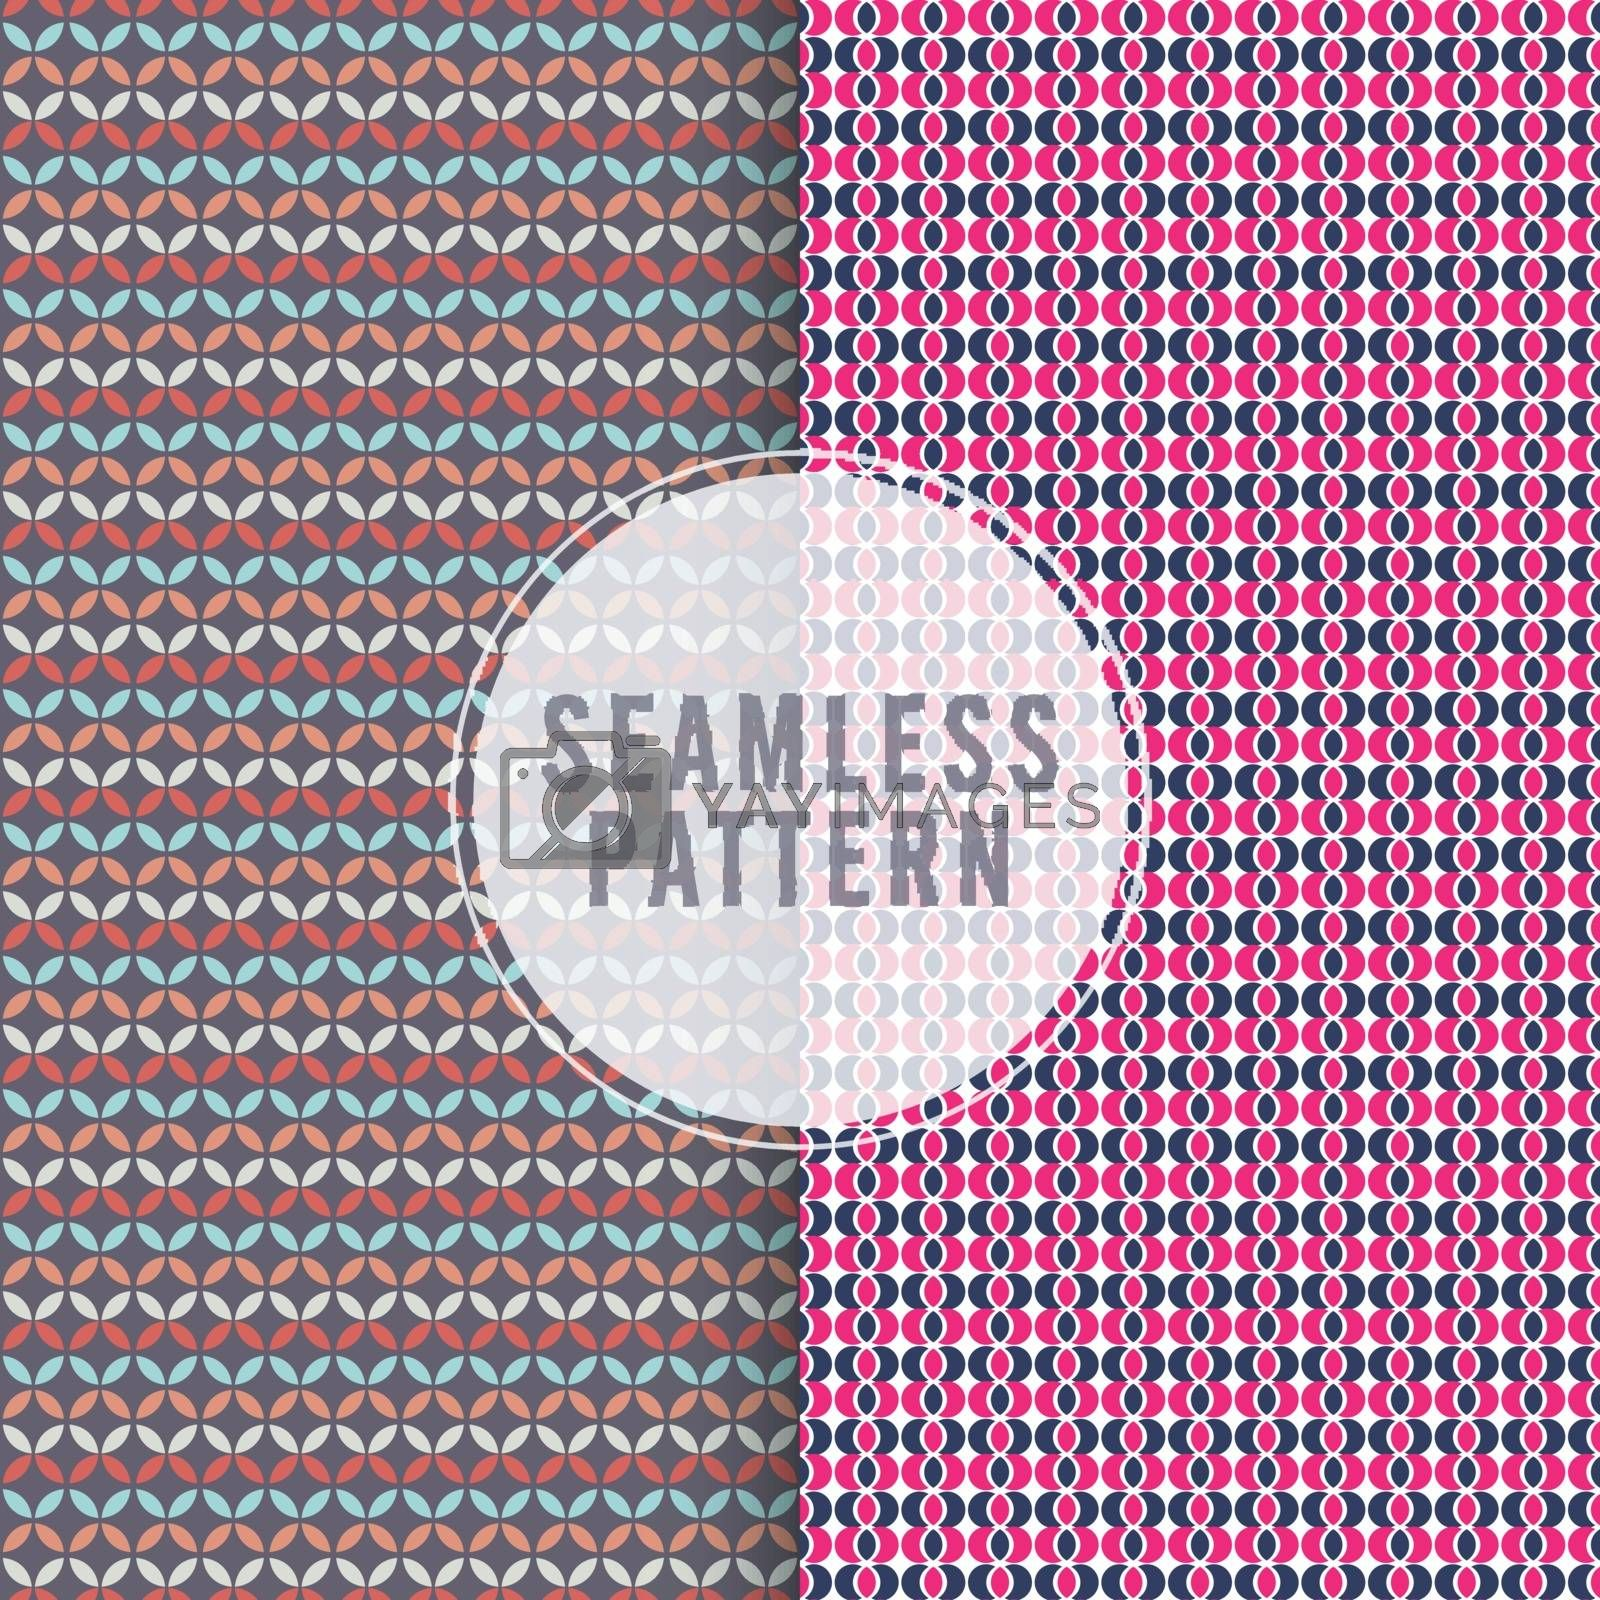 Set of artistic seamless patterns, Creative modern textures, Stylish abstract backgrounds design.